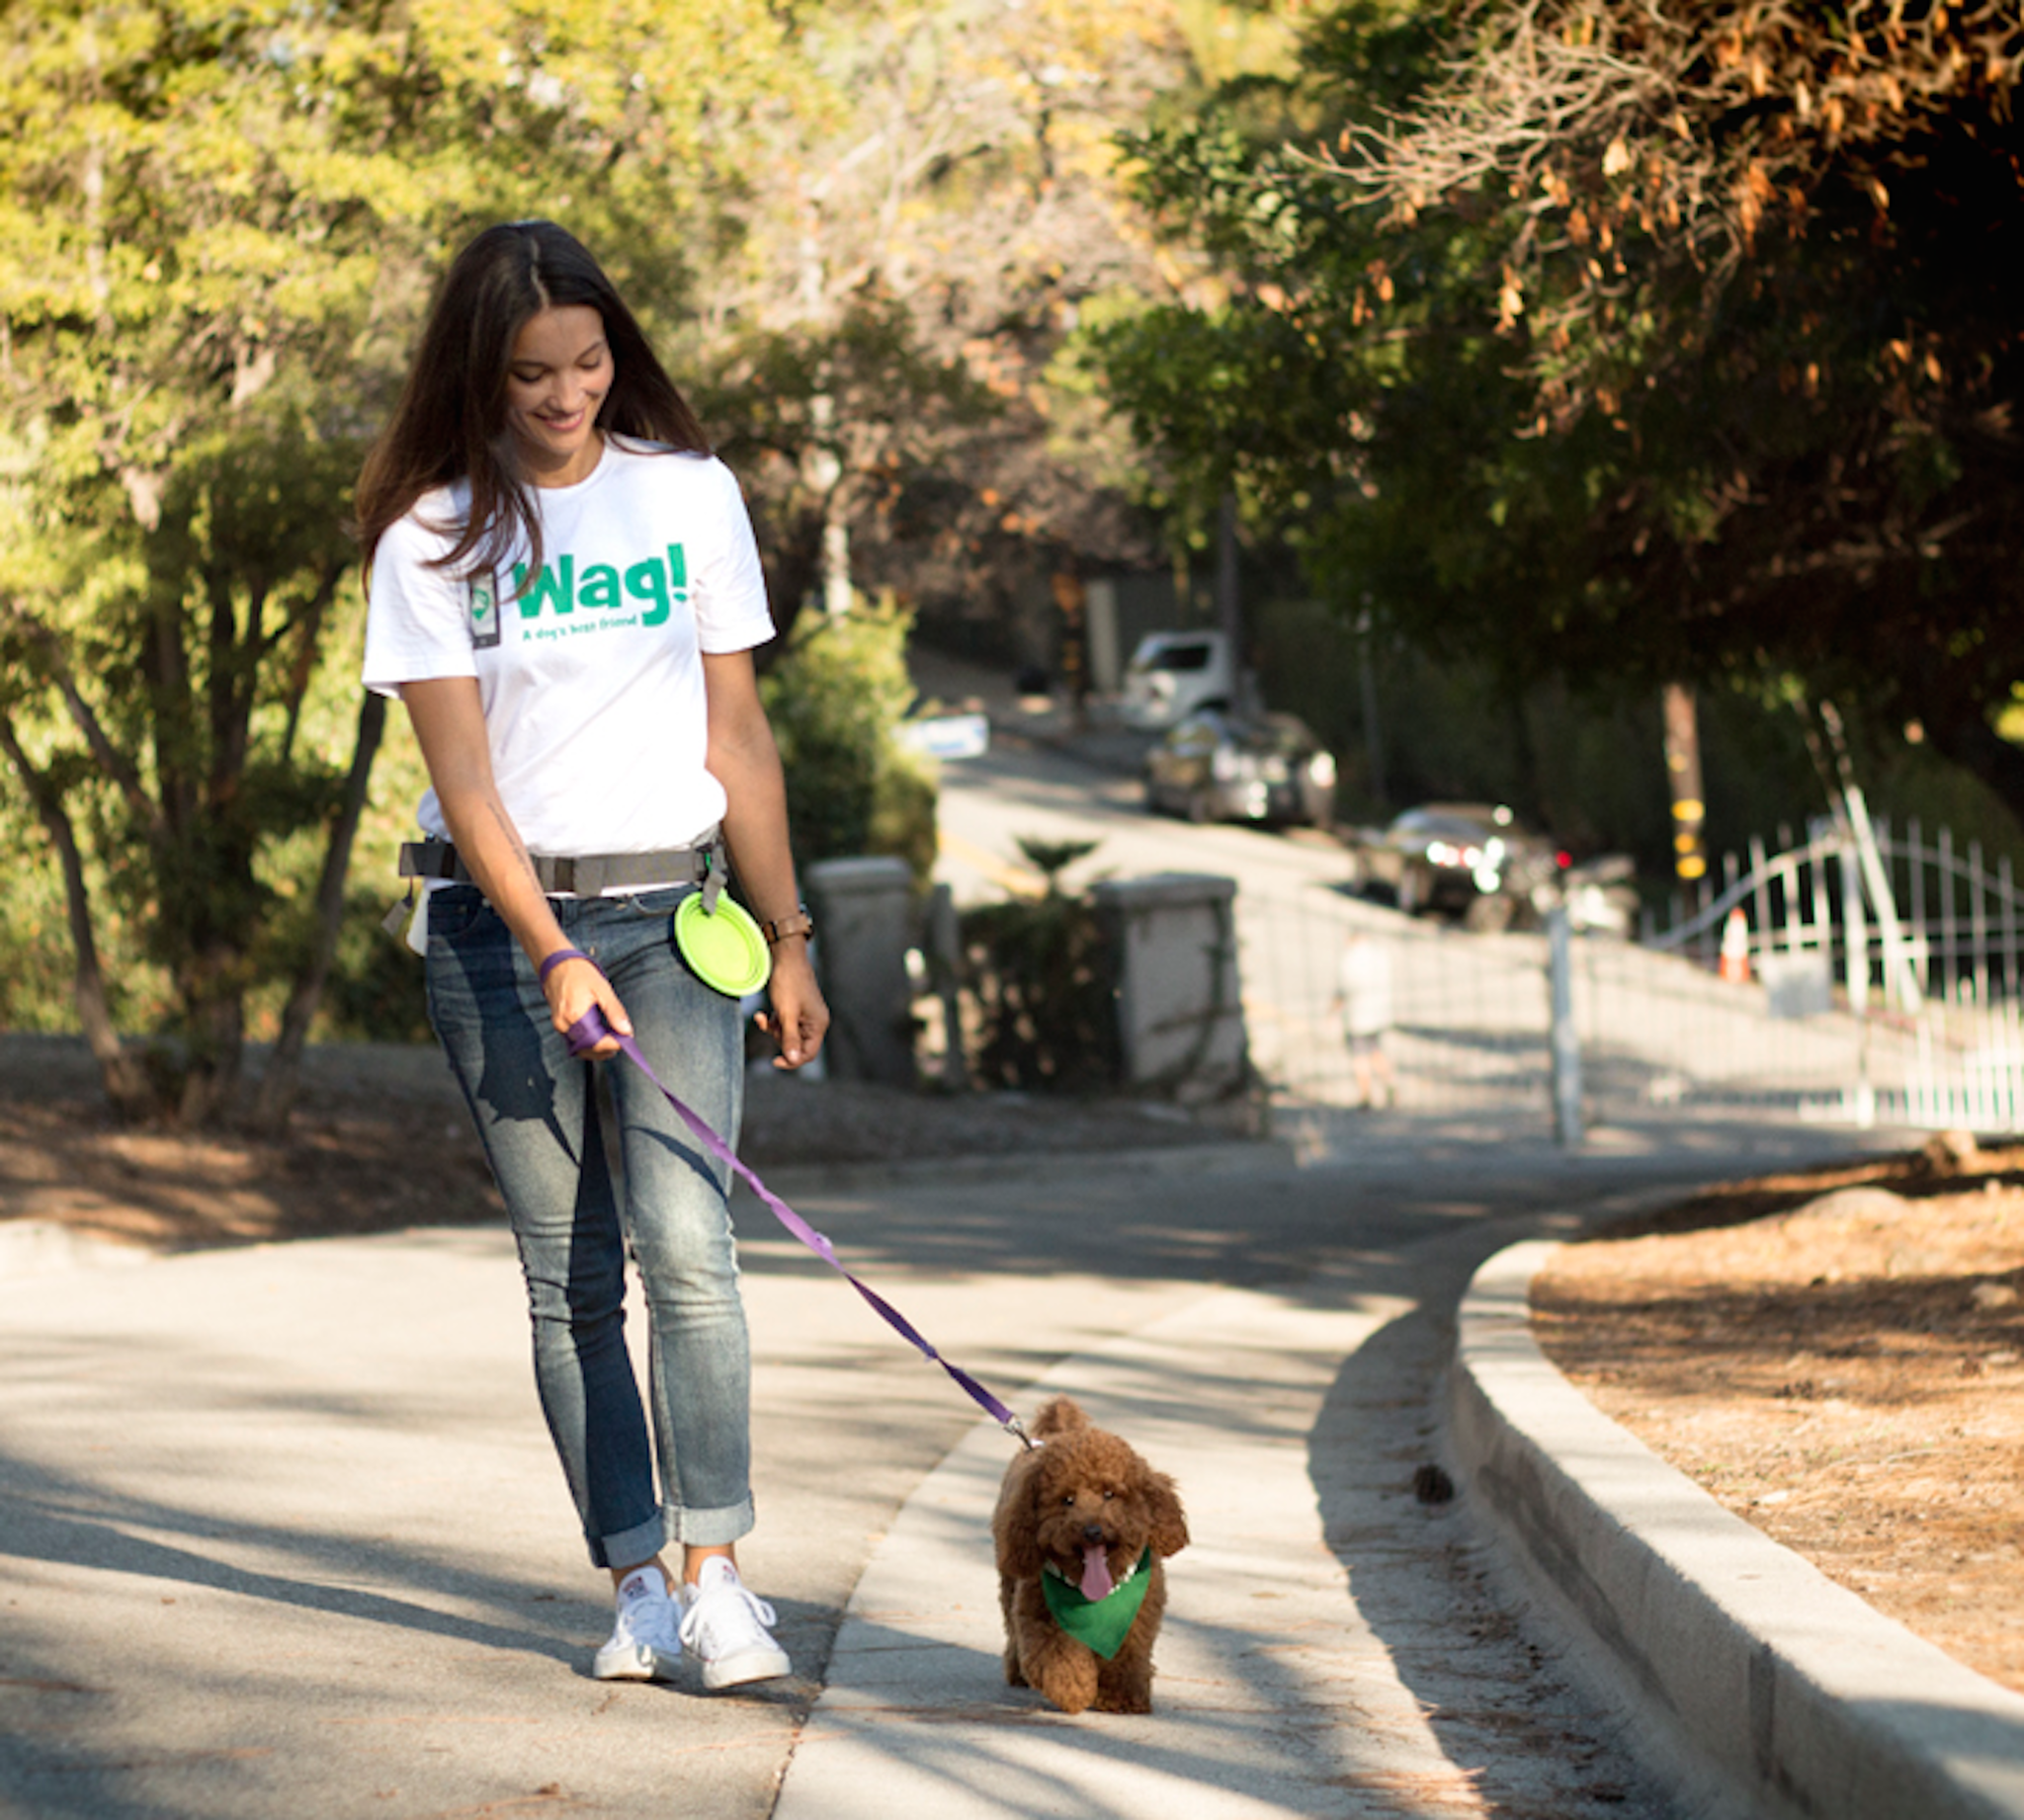 Dog-walking start-up Wag quickly grows from pup to fierce competitor